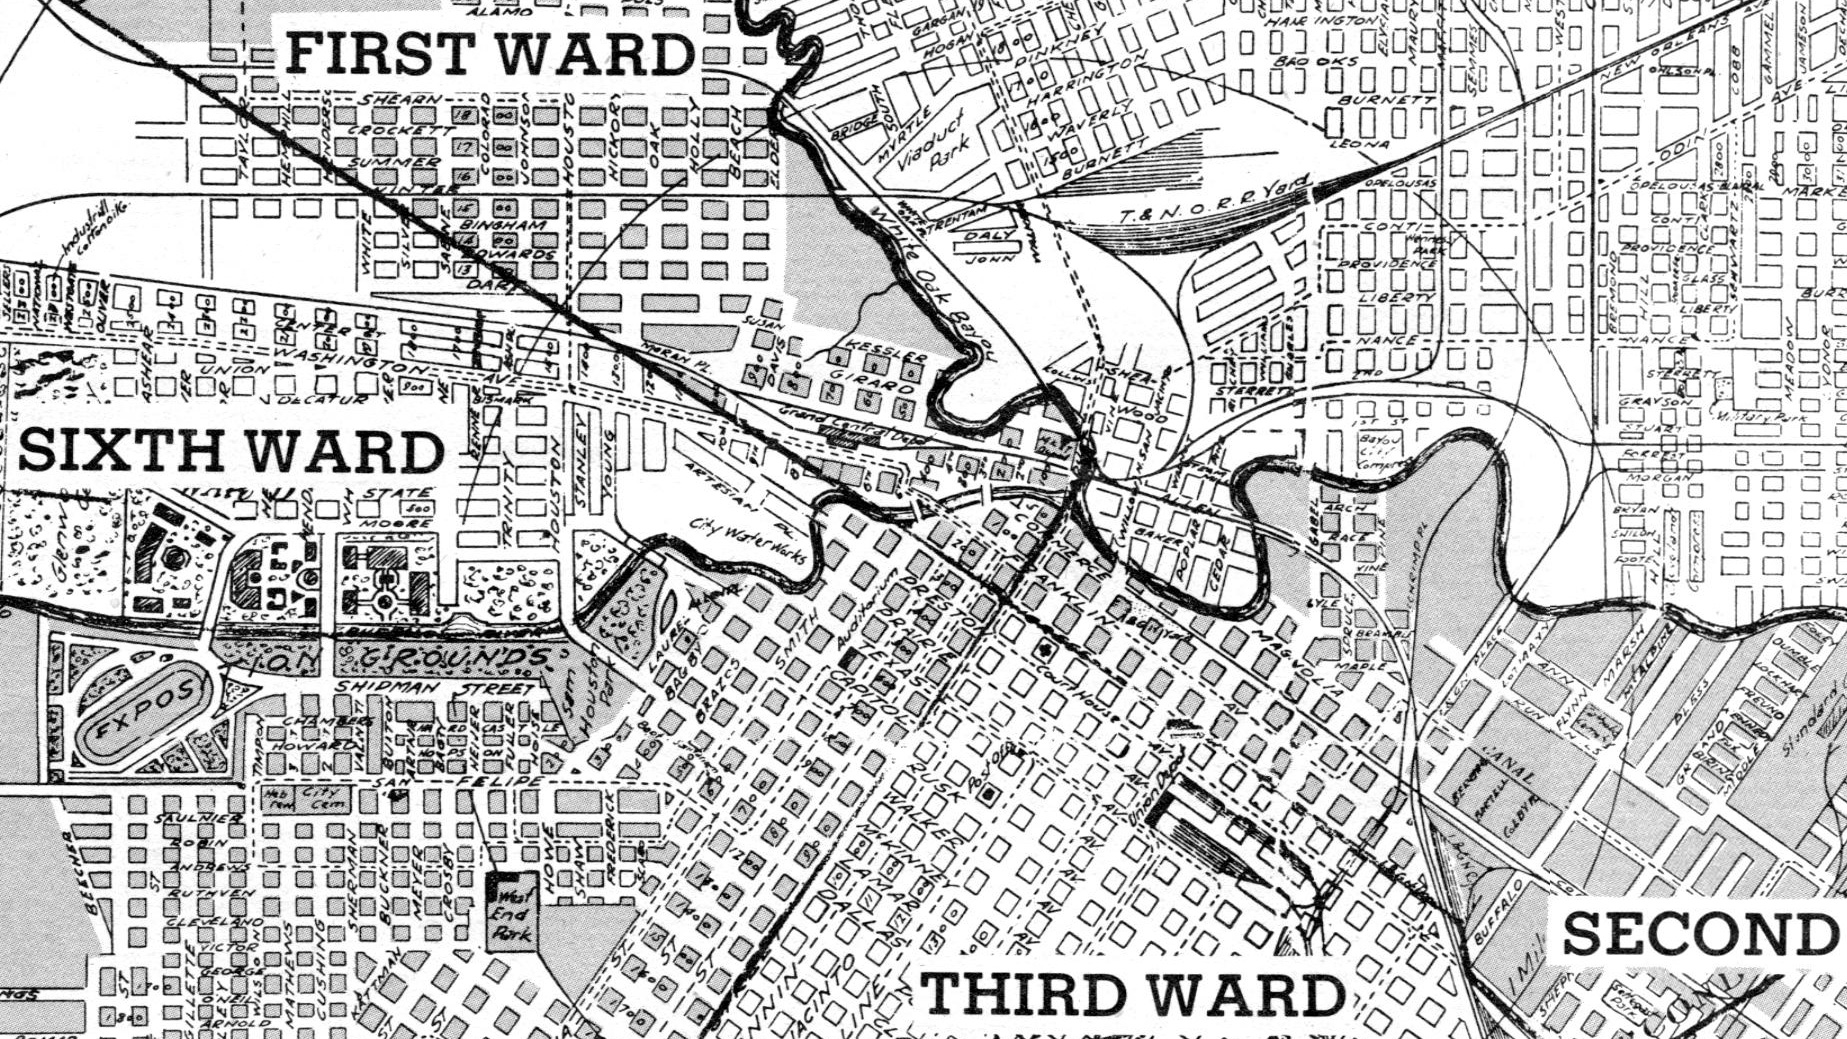 1920 Houston Map Showing 6th Ward